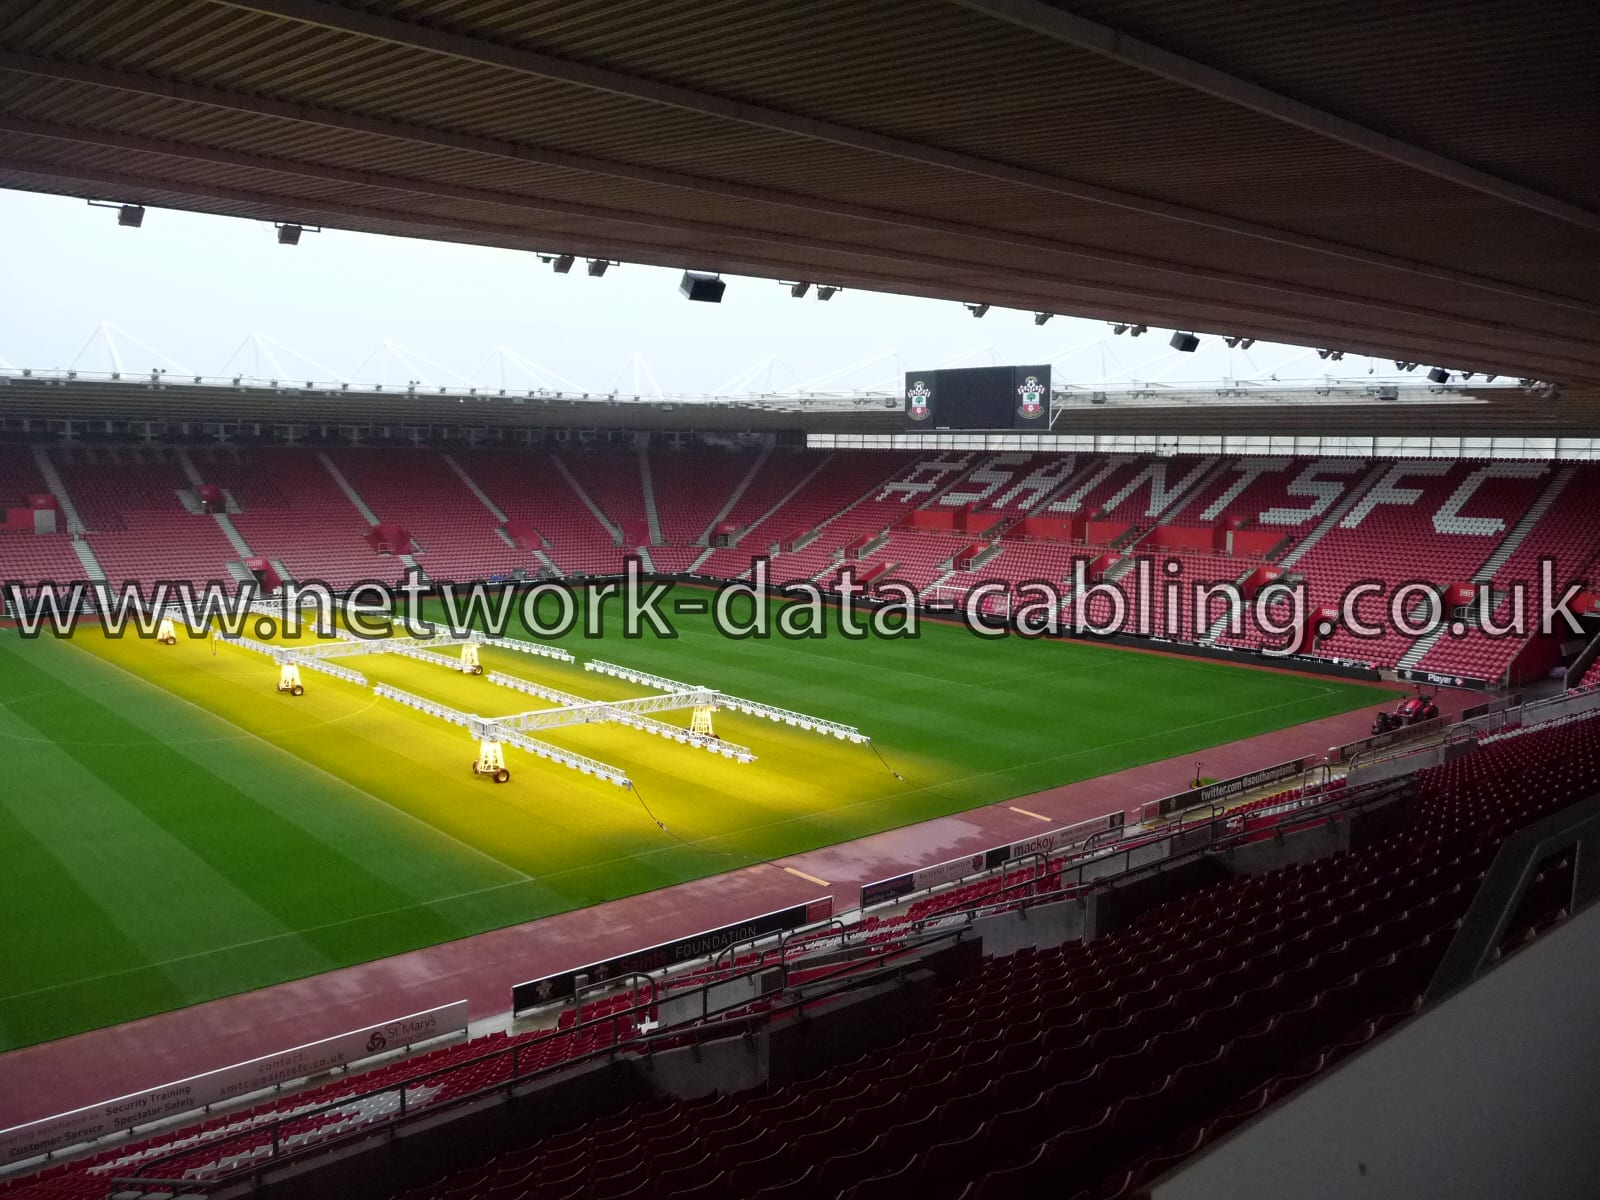 Cabling for sports industry